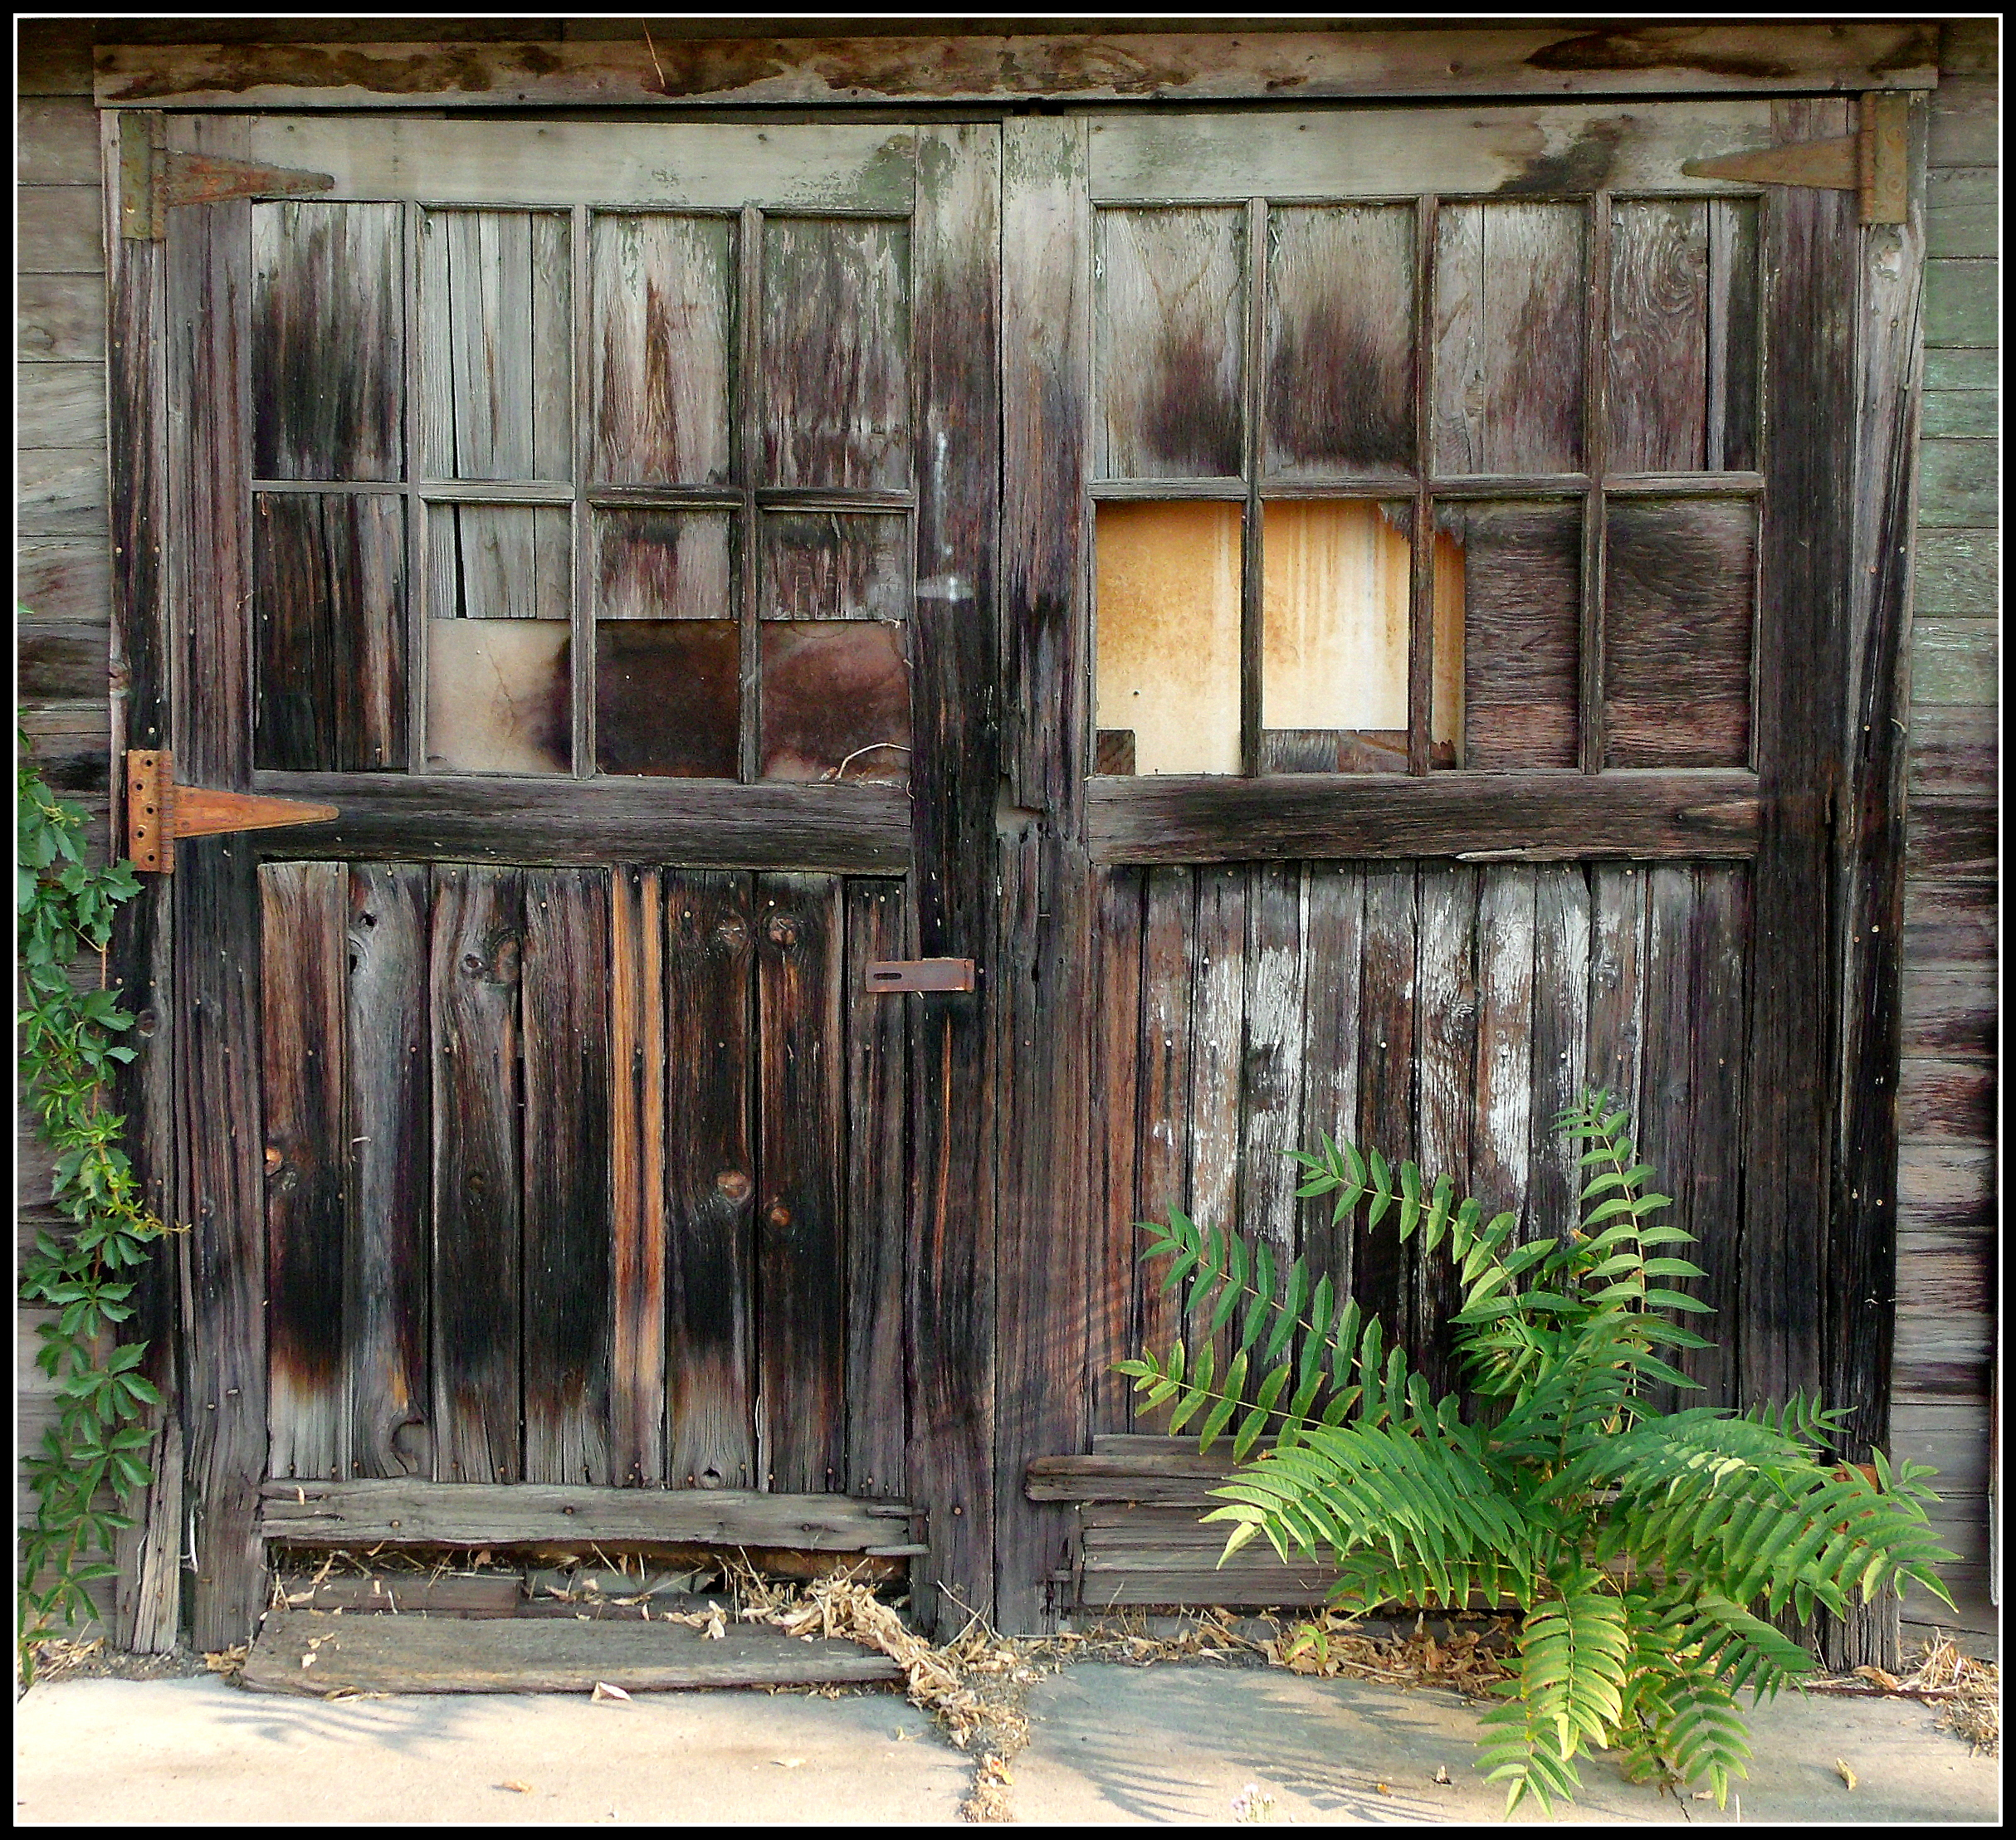 Old wooden door scott 39 s place images and words - How to use old doors and windows ...